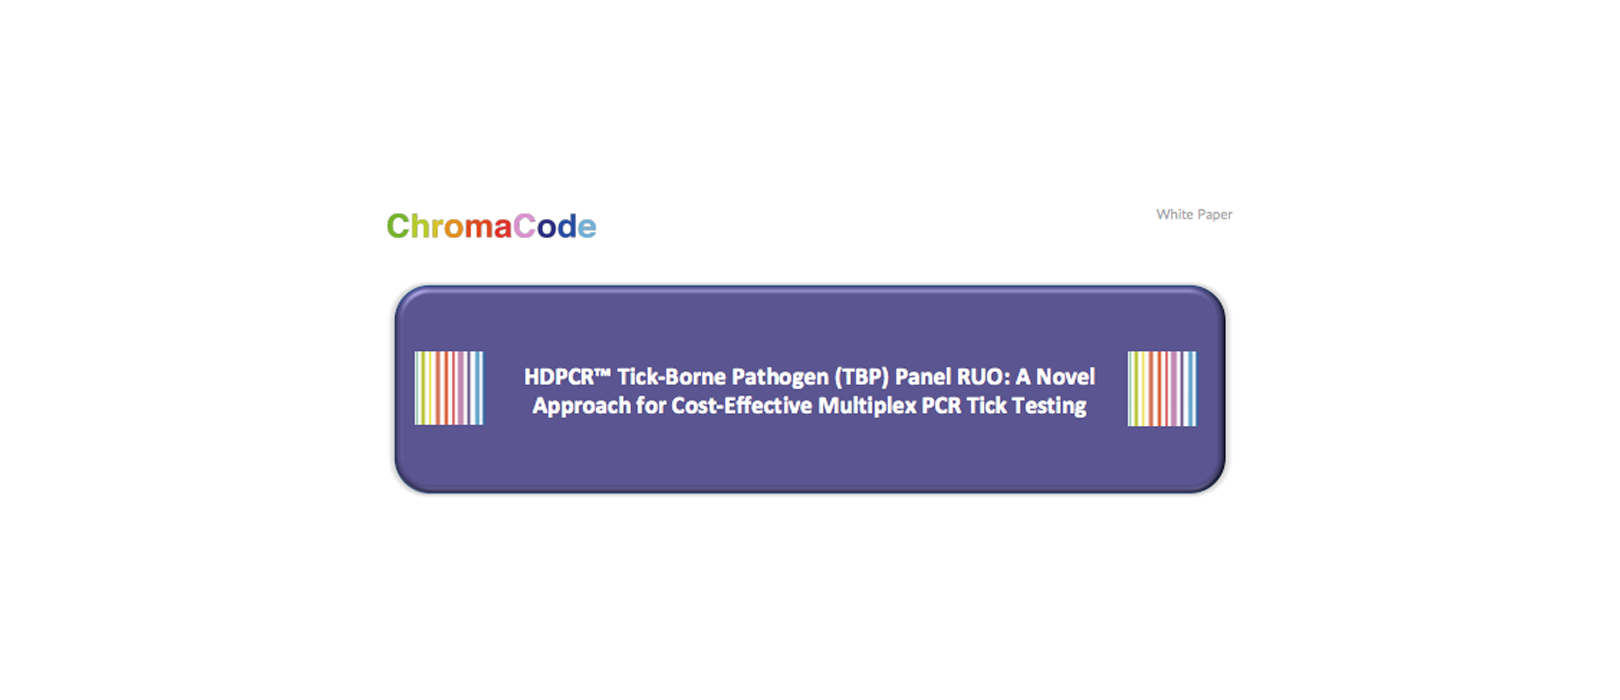 White paper highlights design and analytical performance of the HDPCR Tick-Borne Pathogen (TBP) Panel RUO